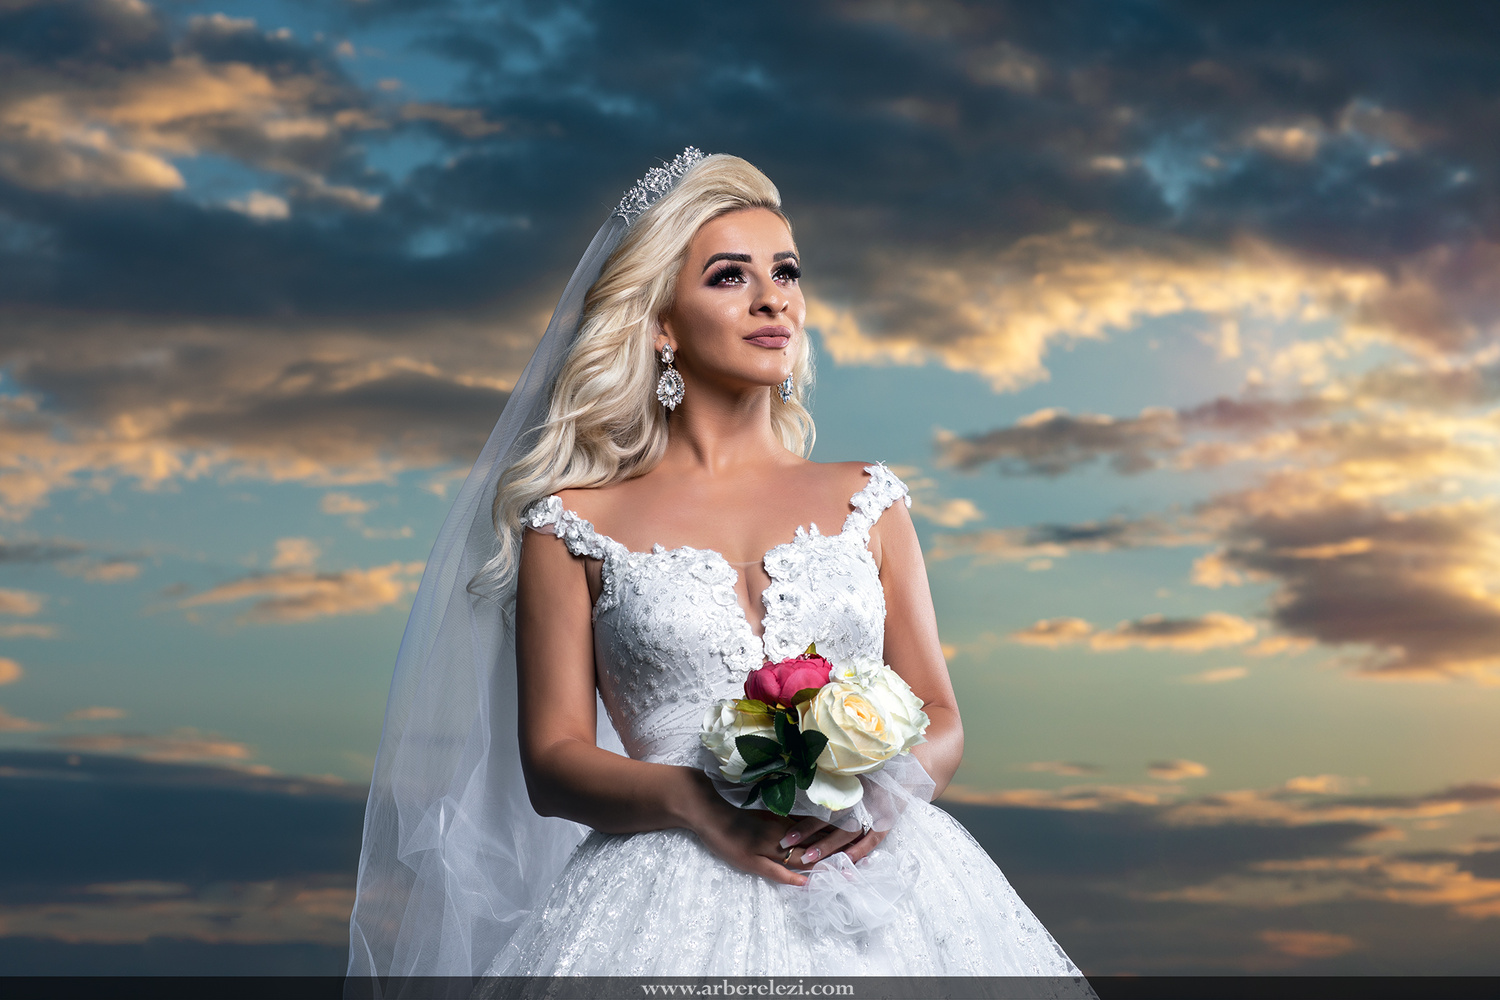 Bridal Photography Wedding On Fstoppers